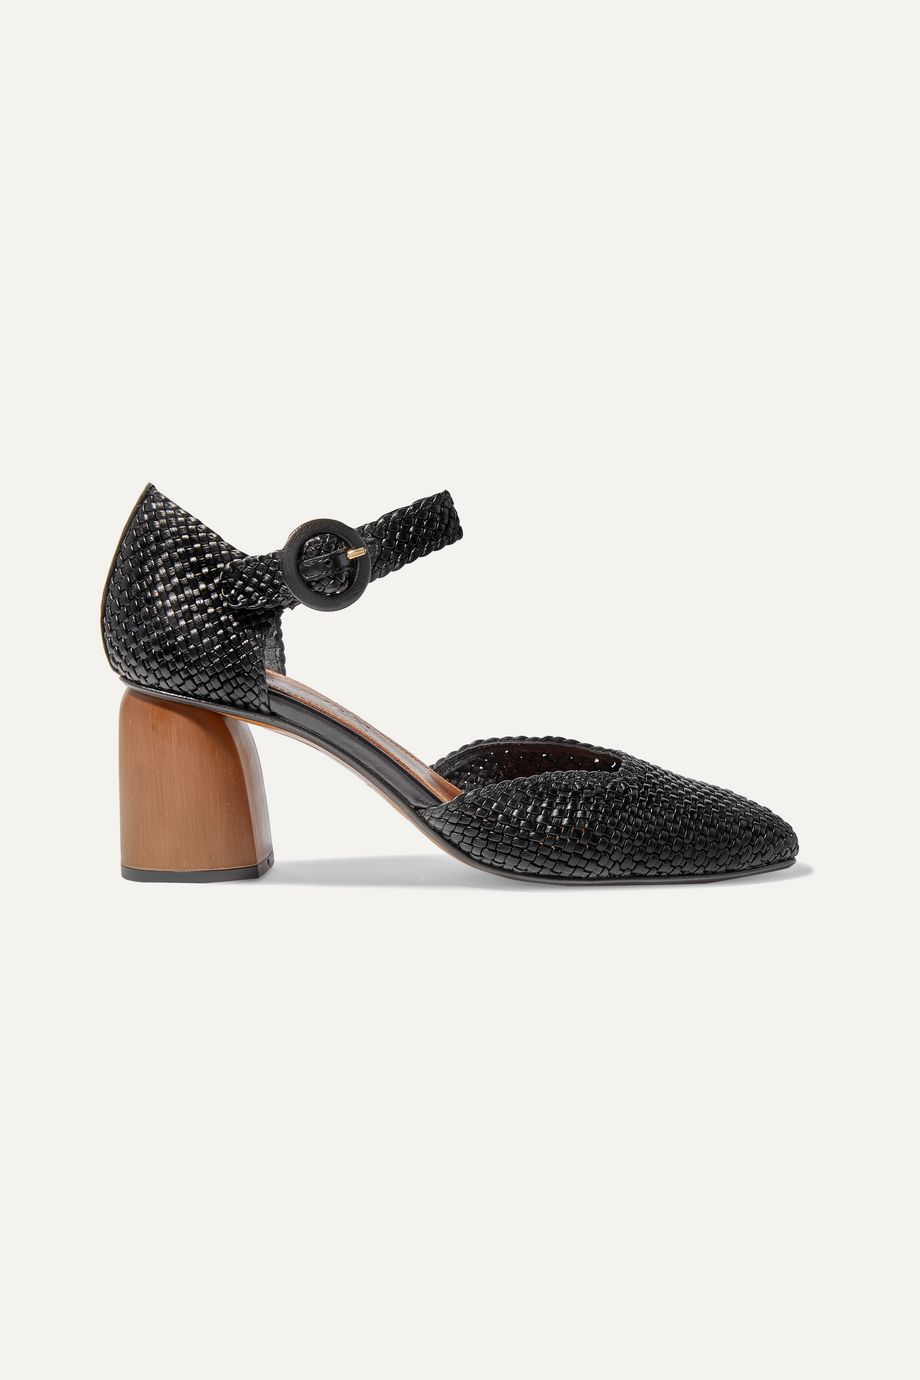 Souliers Martinez Antequera woven leather pumps